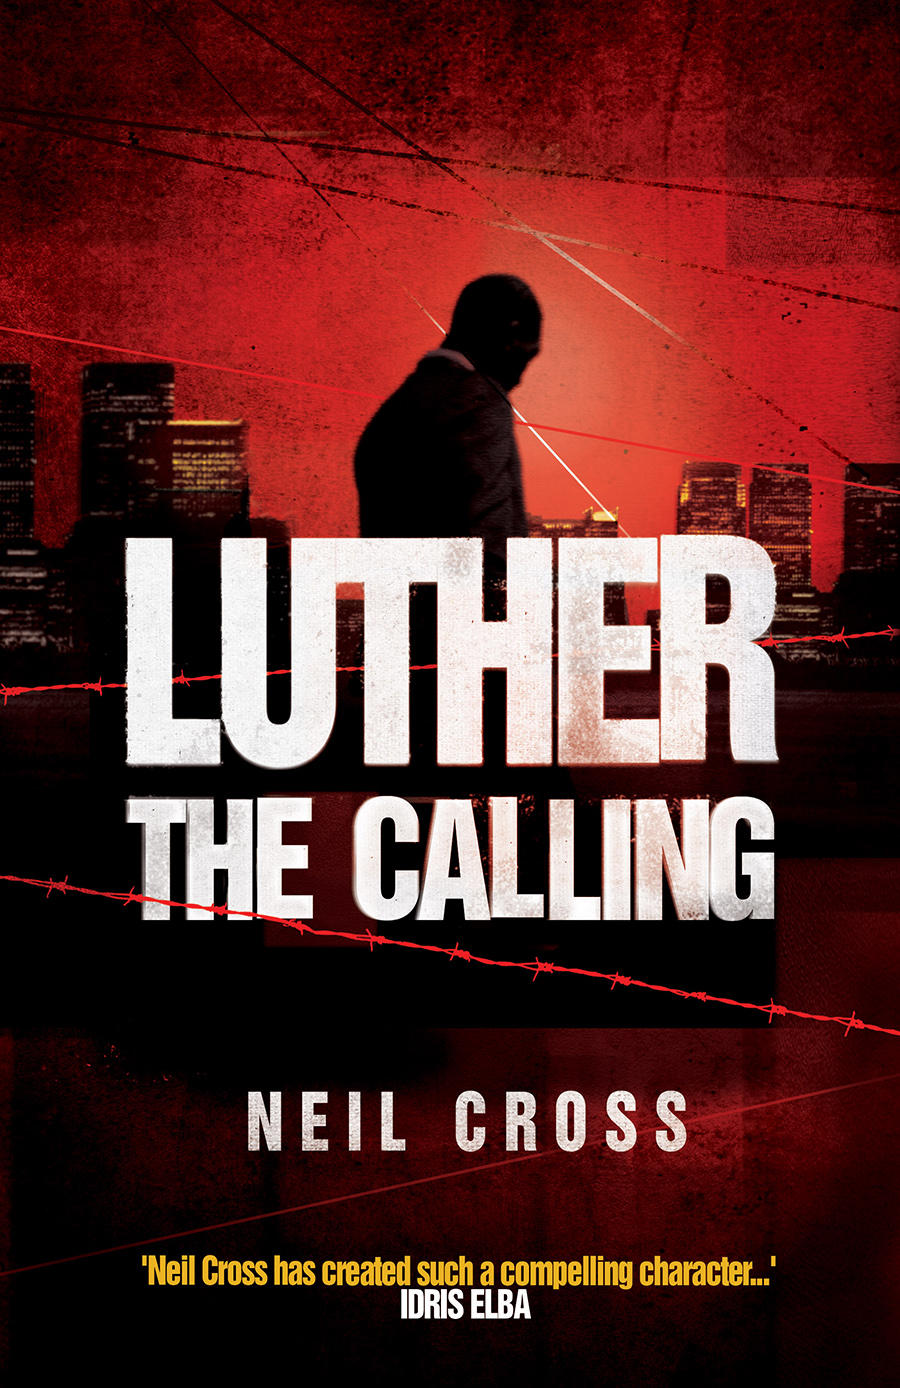 Book Review: The Calling by Neil Cross